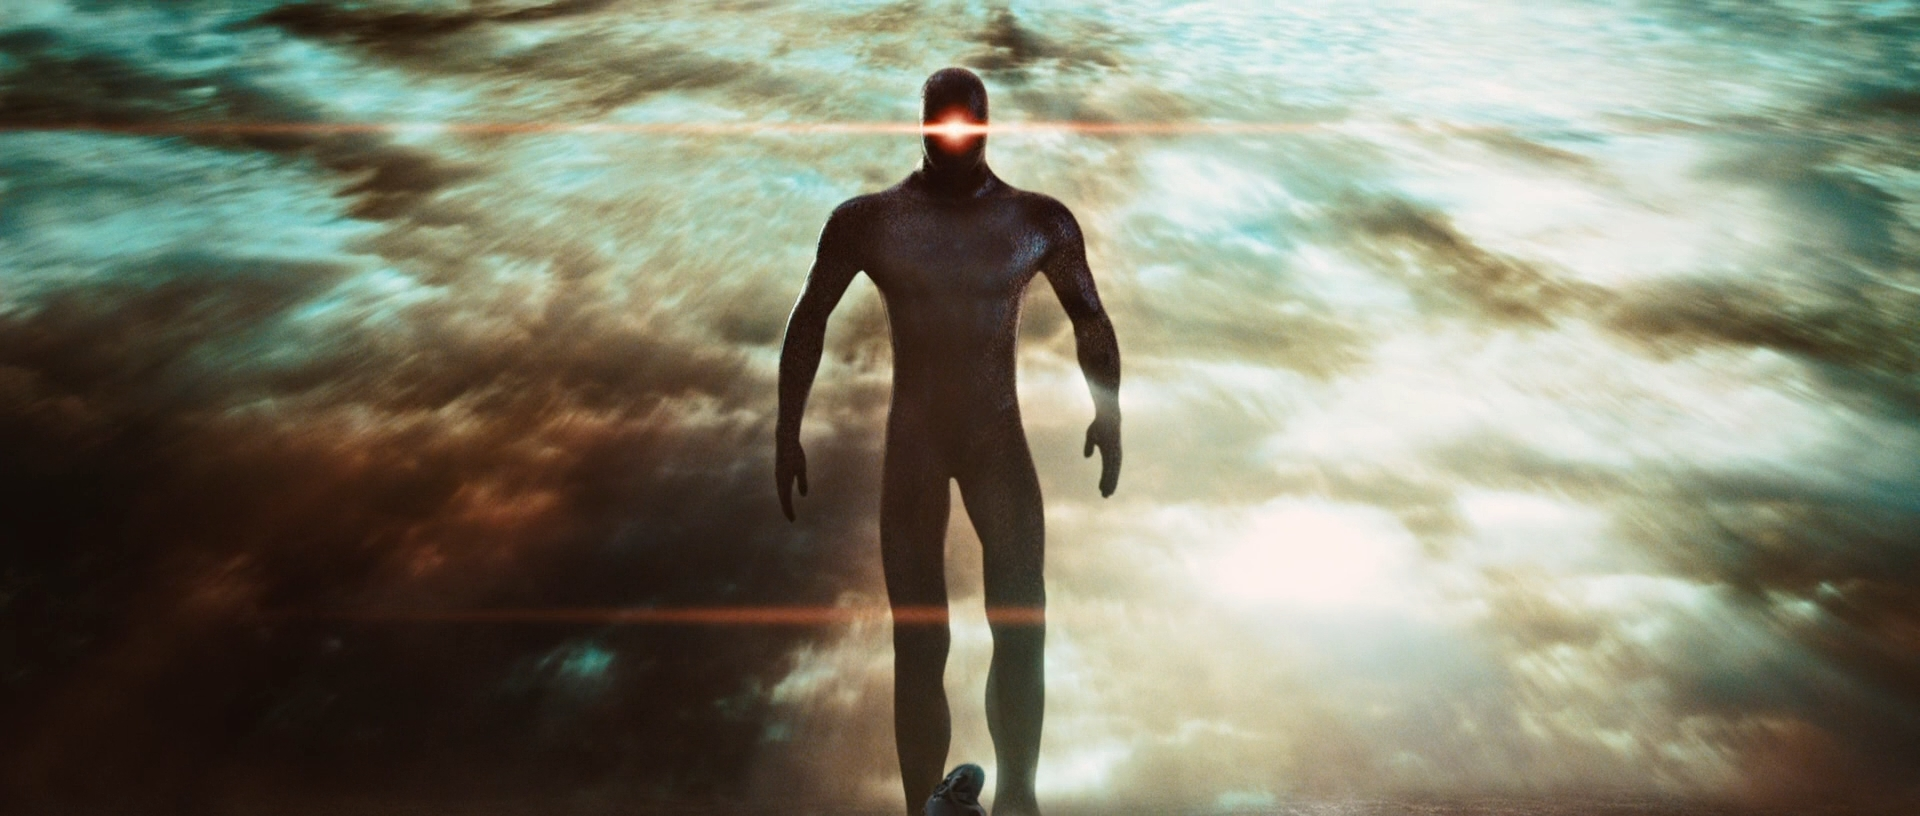 The reconception of Gort in The Day the Earth Stood Still (2008)